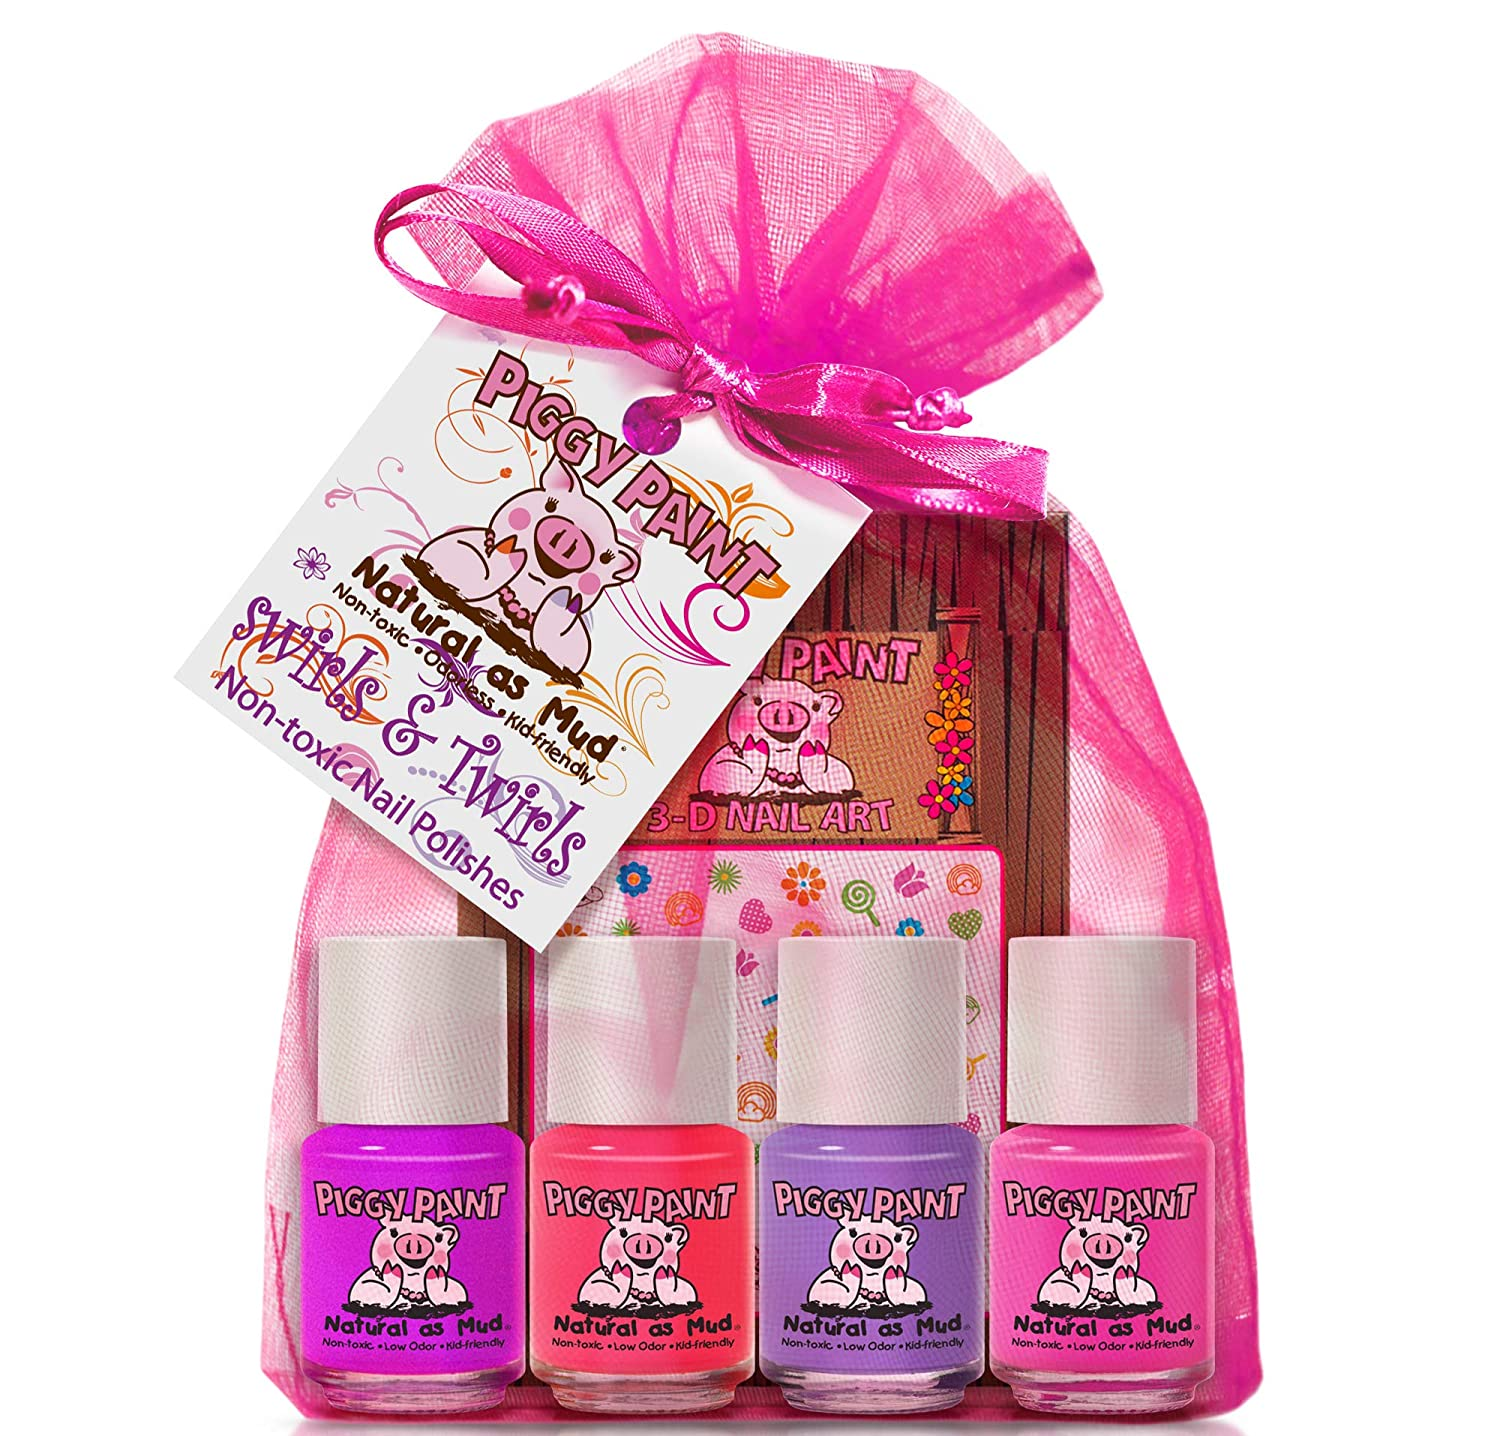 Piggy Paint 100% Non-toxic Girls Nail Polish - Safe, Chemical Free Low Odor for Kids, Swirls & Twirls Gift Set